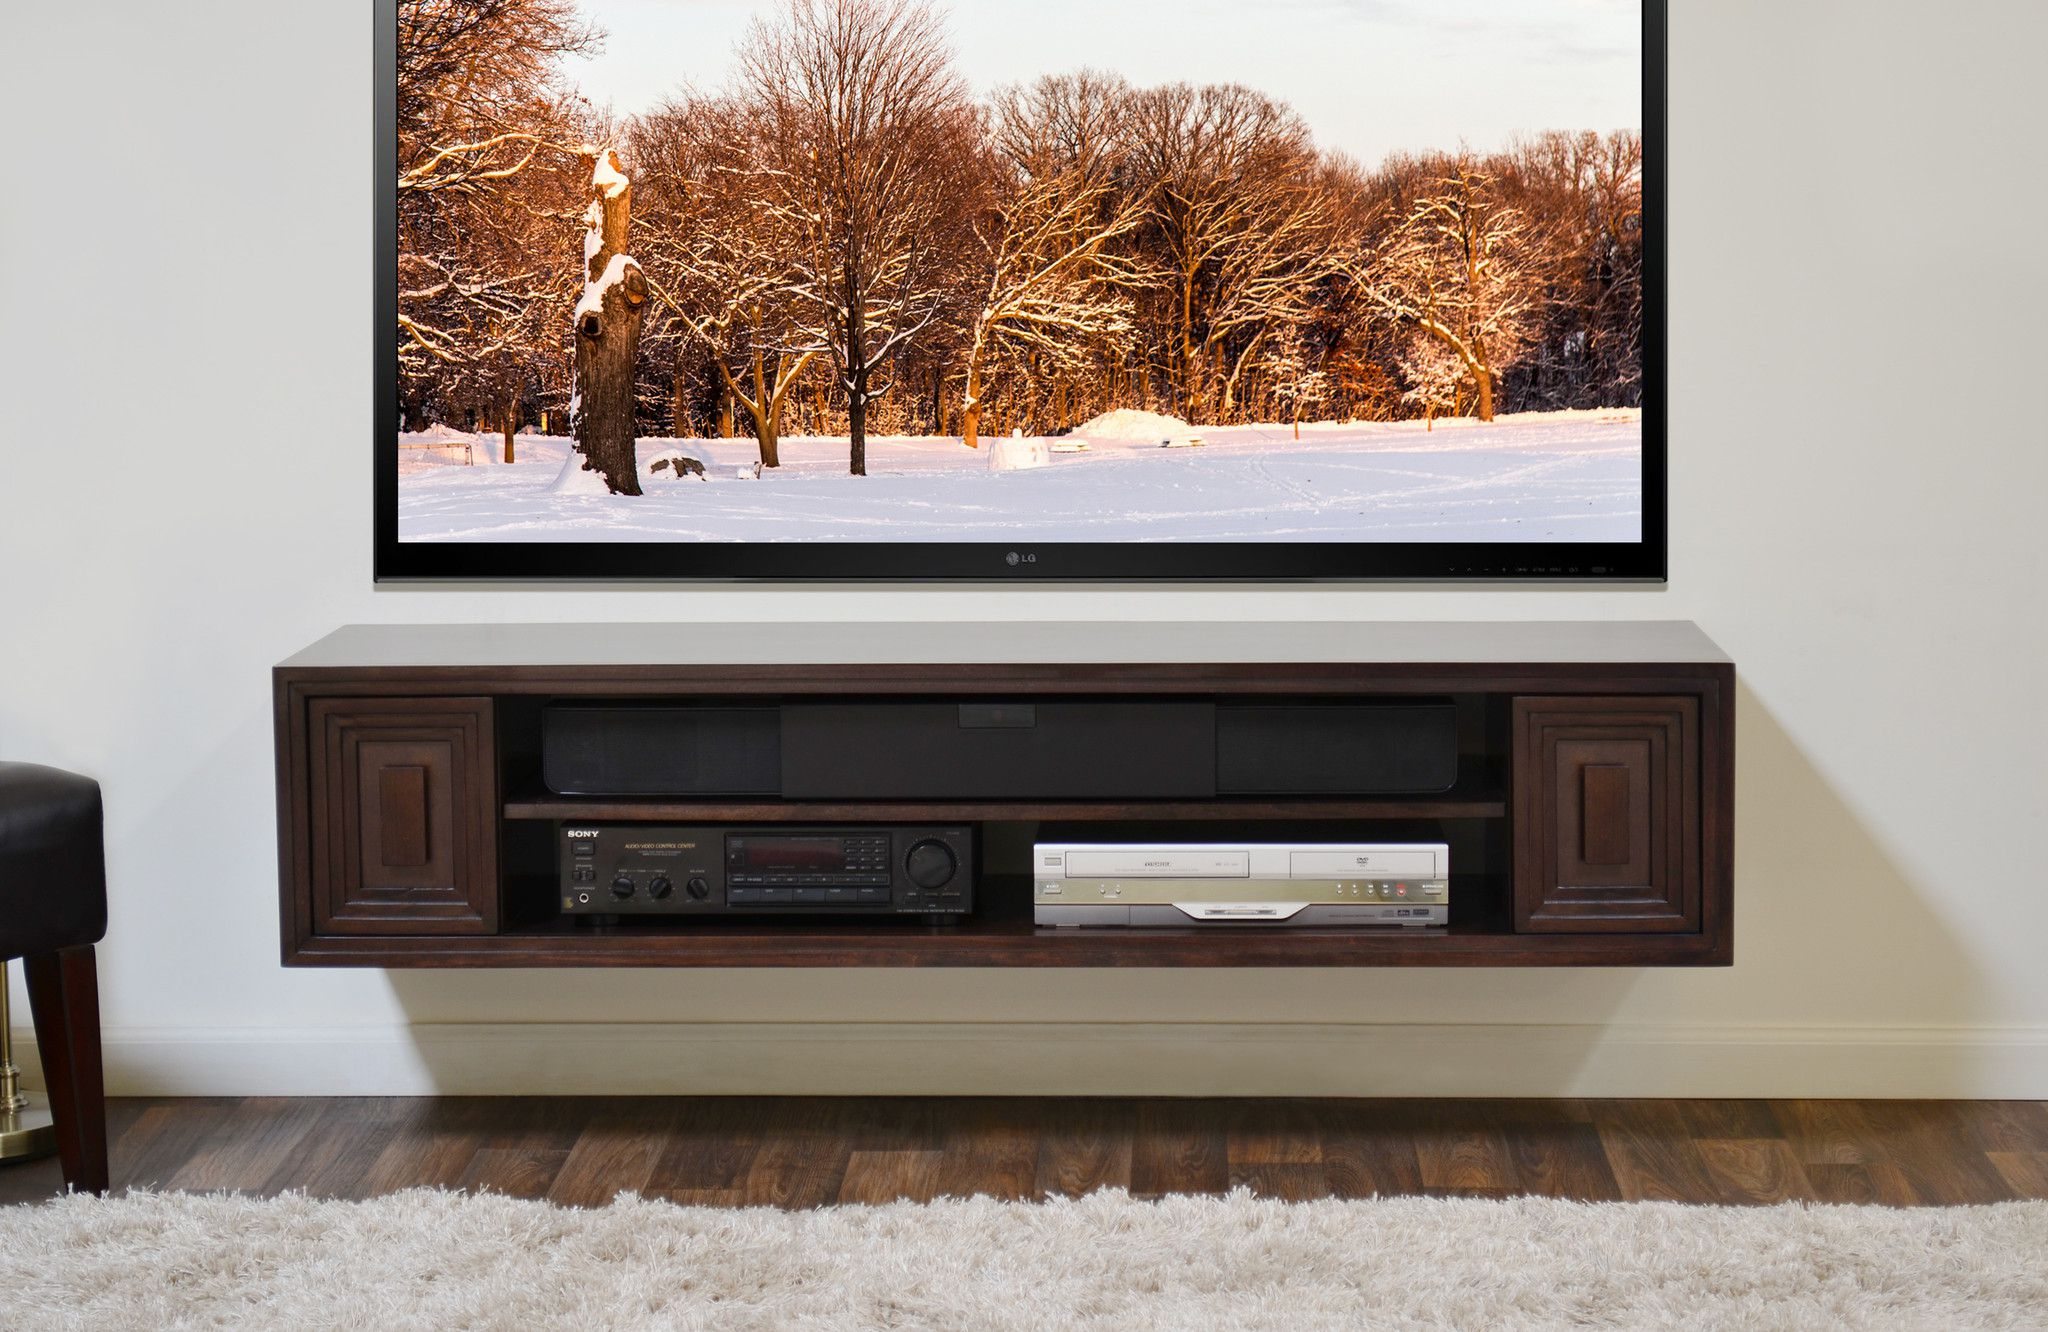 Classic Wall Mount TV Stand on White Painted Wall Completing Interesting Media Room with Oak Flooring